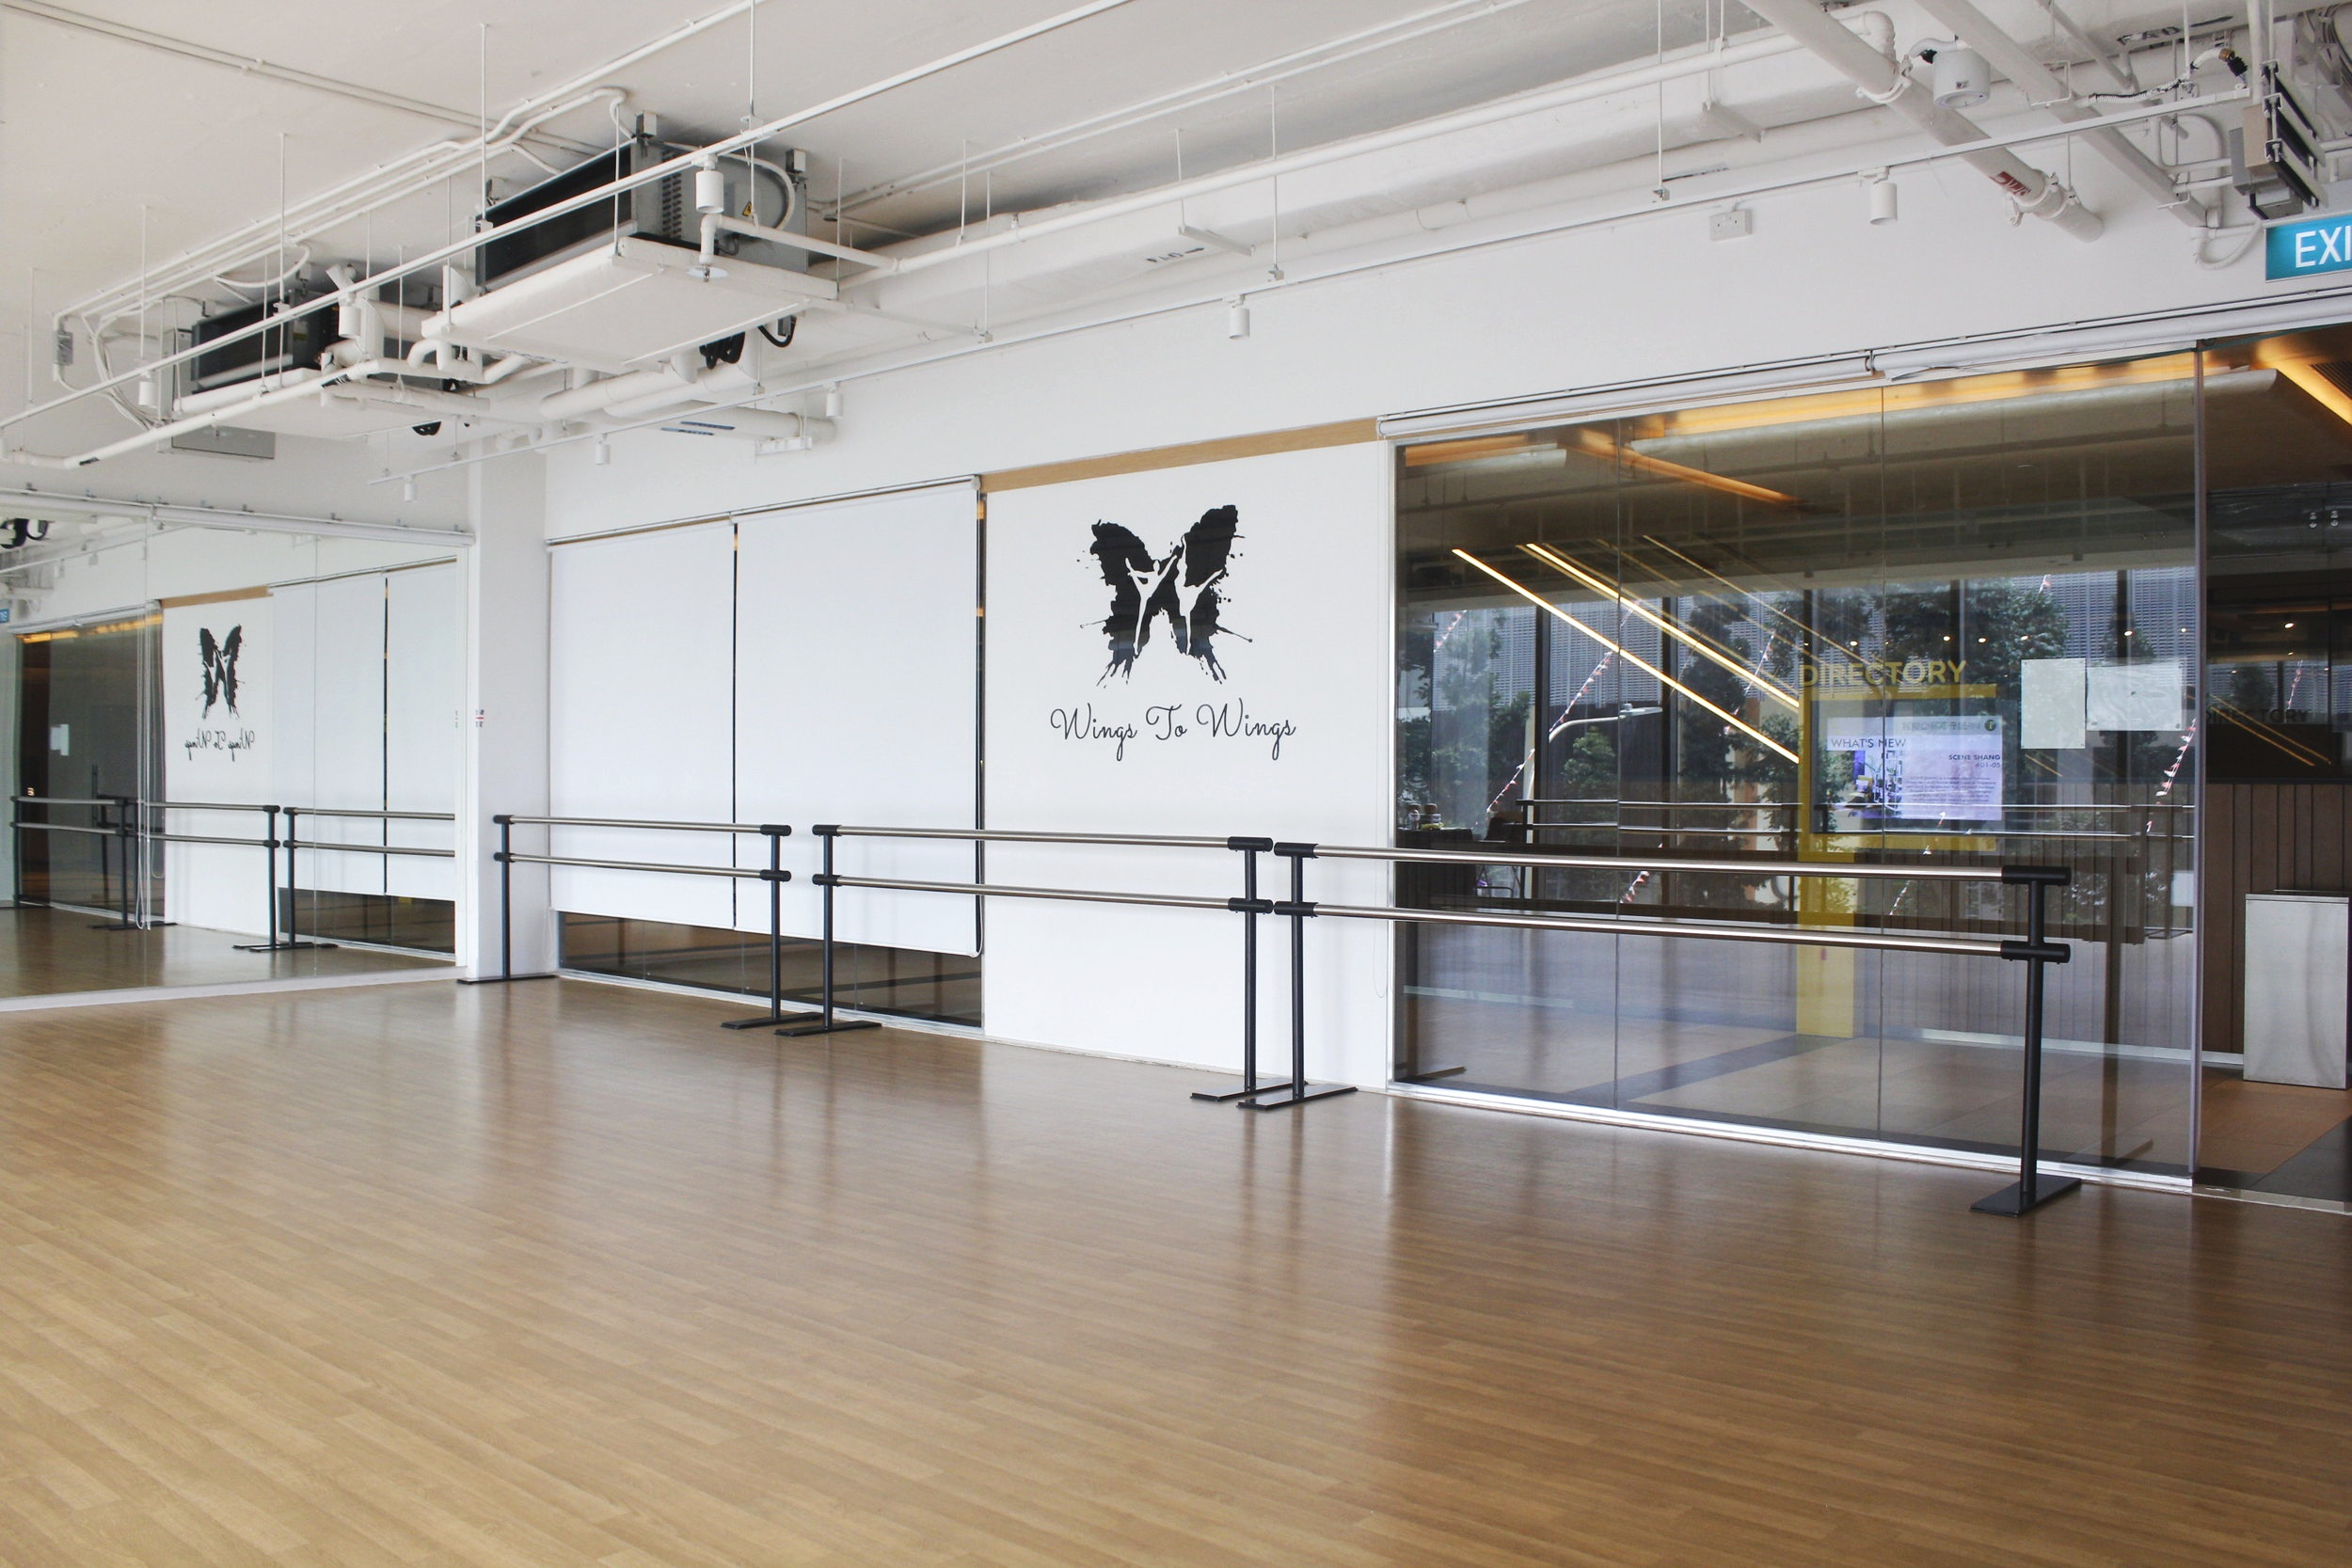 STUDIO 1 - LARGE STUDIO (117sqm)  Features: Yoga mats, dumb bells, pilates ball, yoga block, resistance bands, aux cable, speakers. Can fit up to 25 pax, depending on activity.